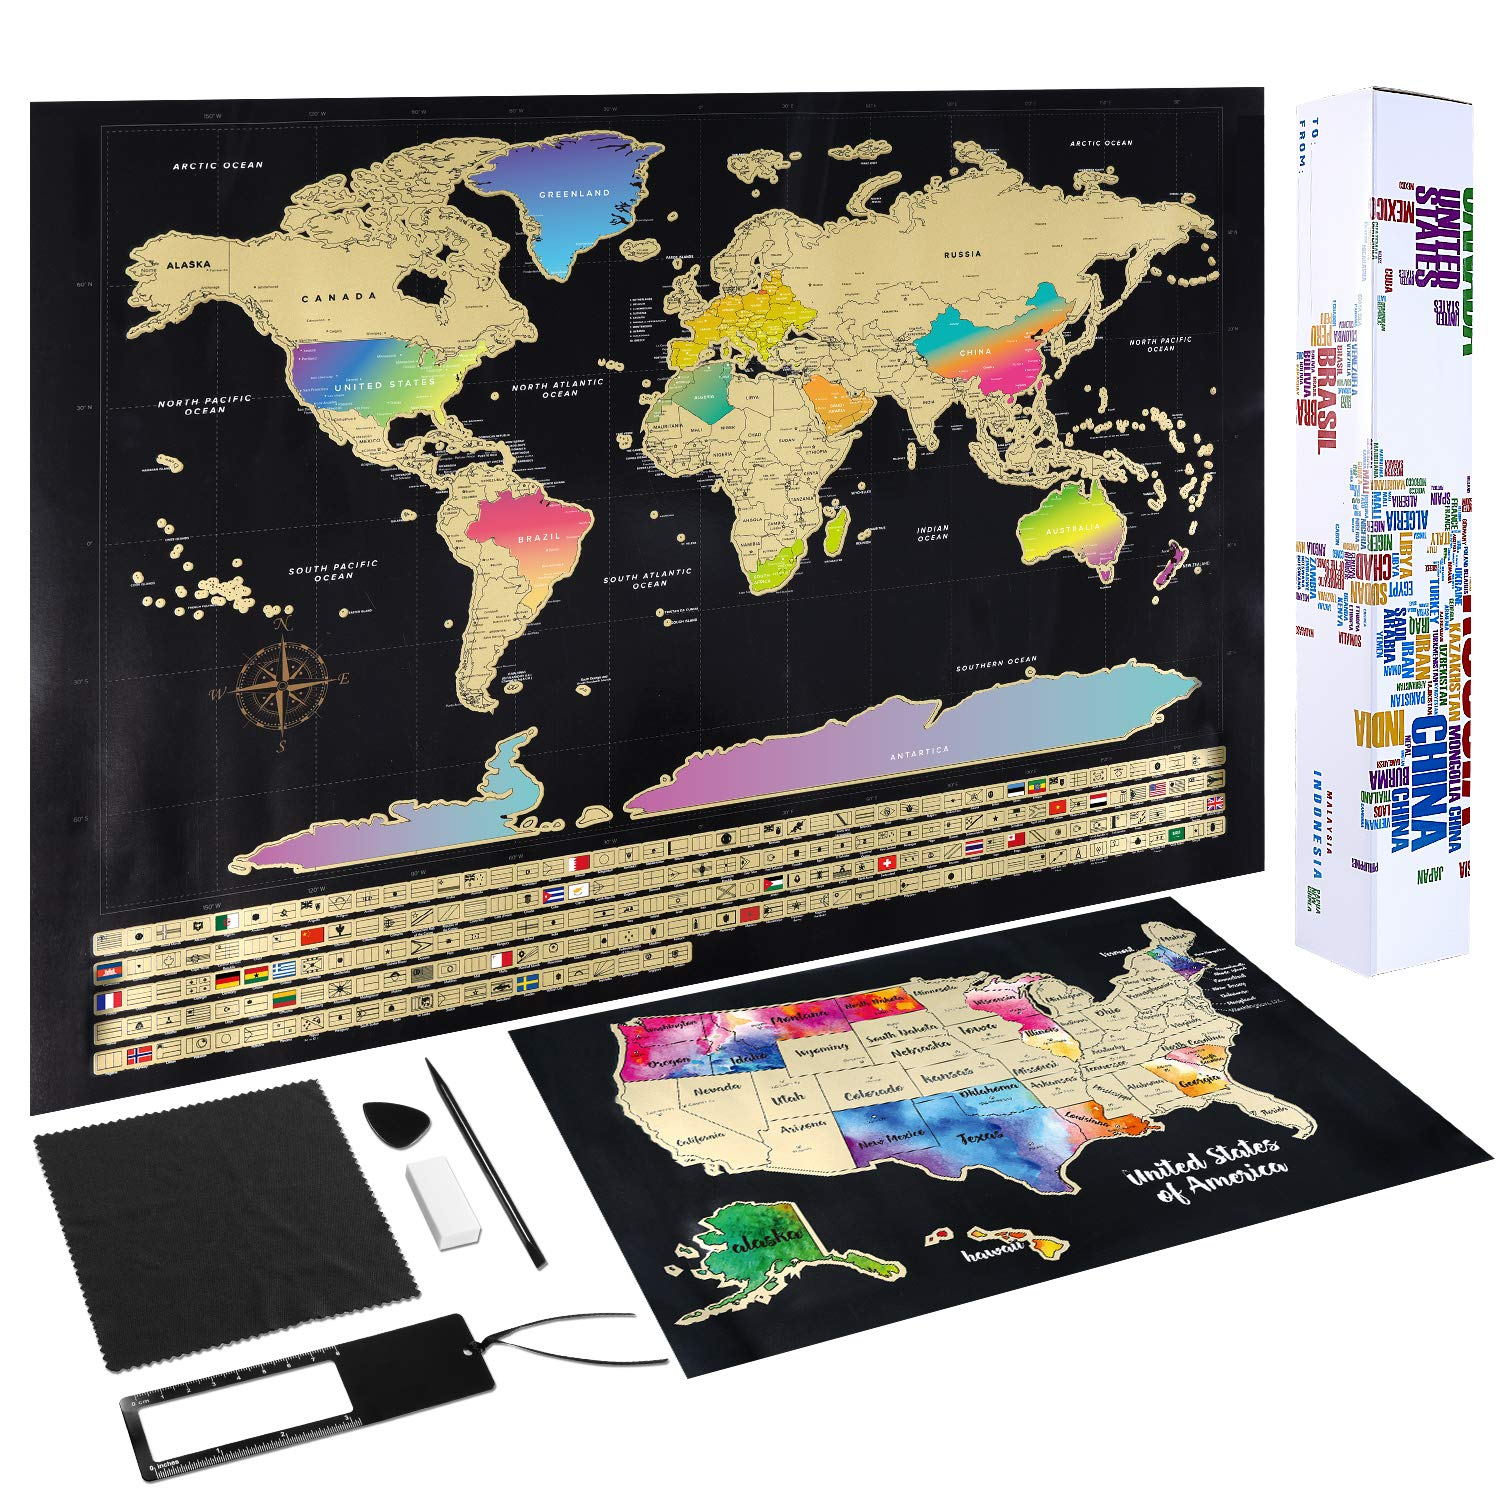 Amazon.com : Scratch Off Map of The World - (2-in-1) World ...